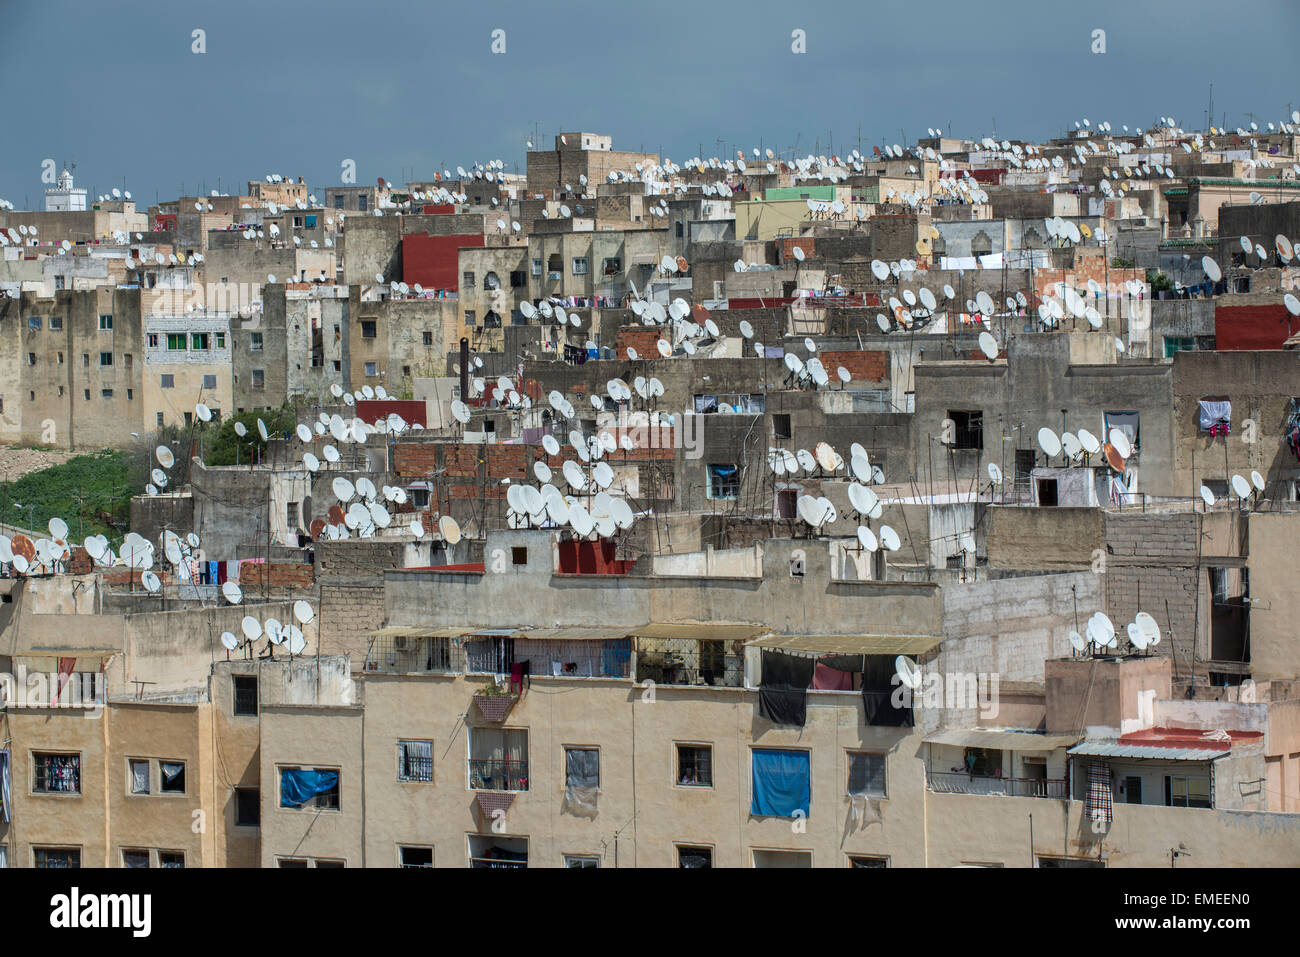 Fes, Morocco.  Sattelite dishes on rooftops of houses in medina, old section of fes. - Stock Image